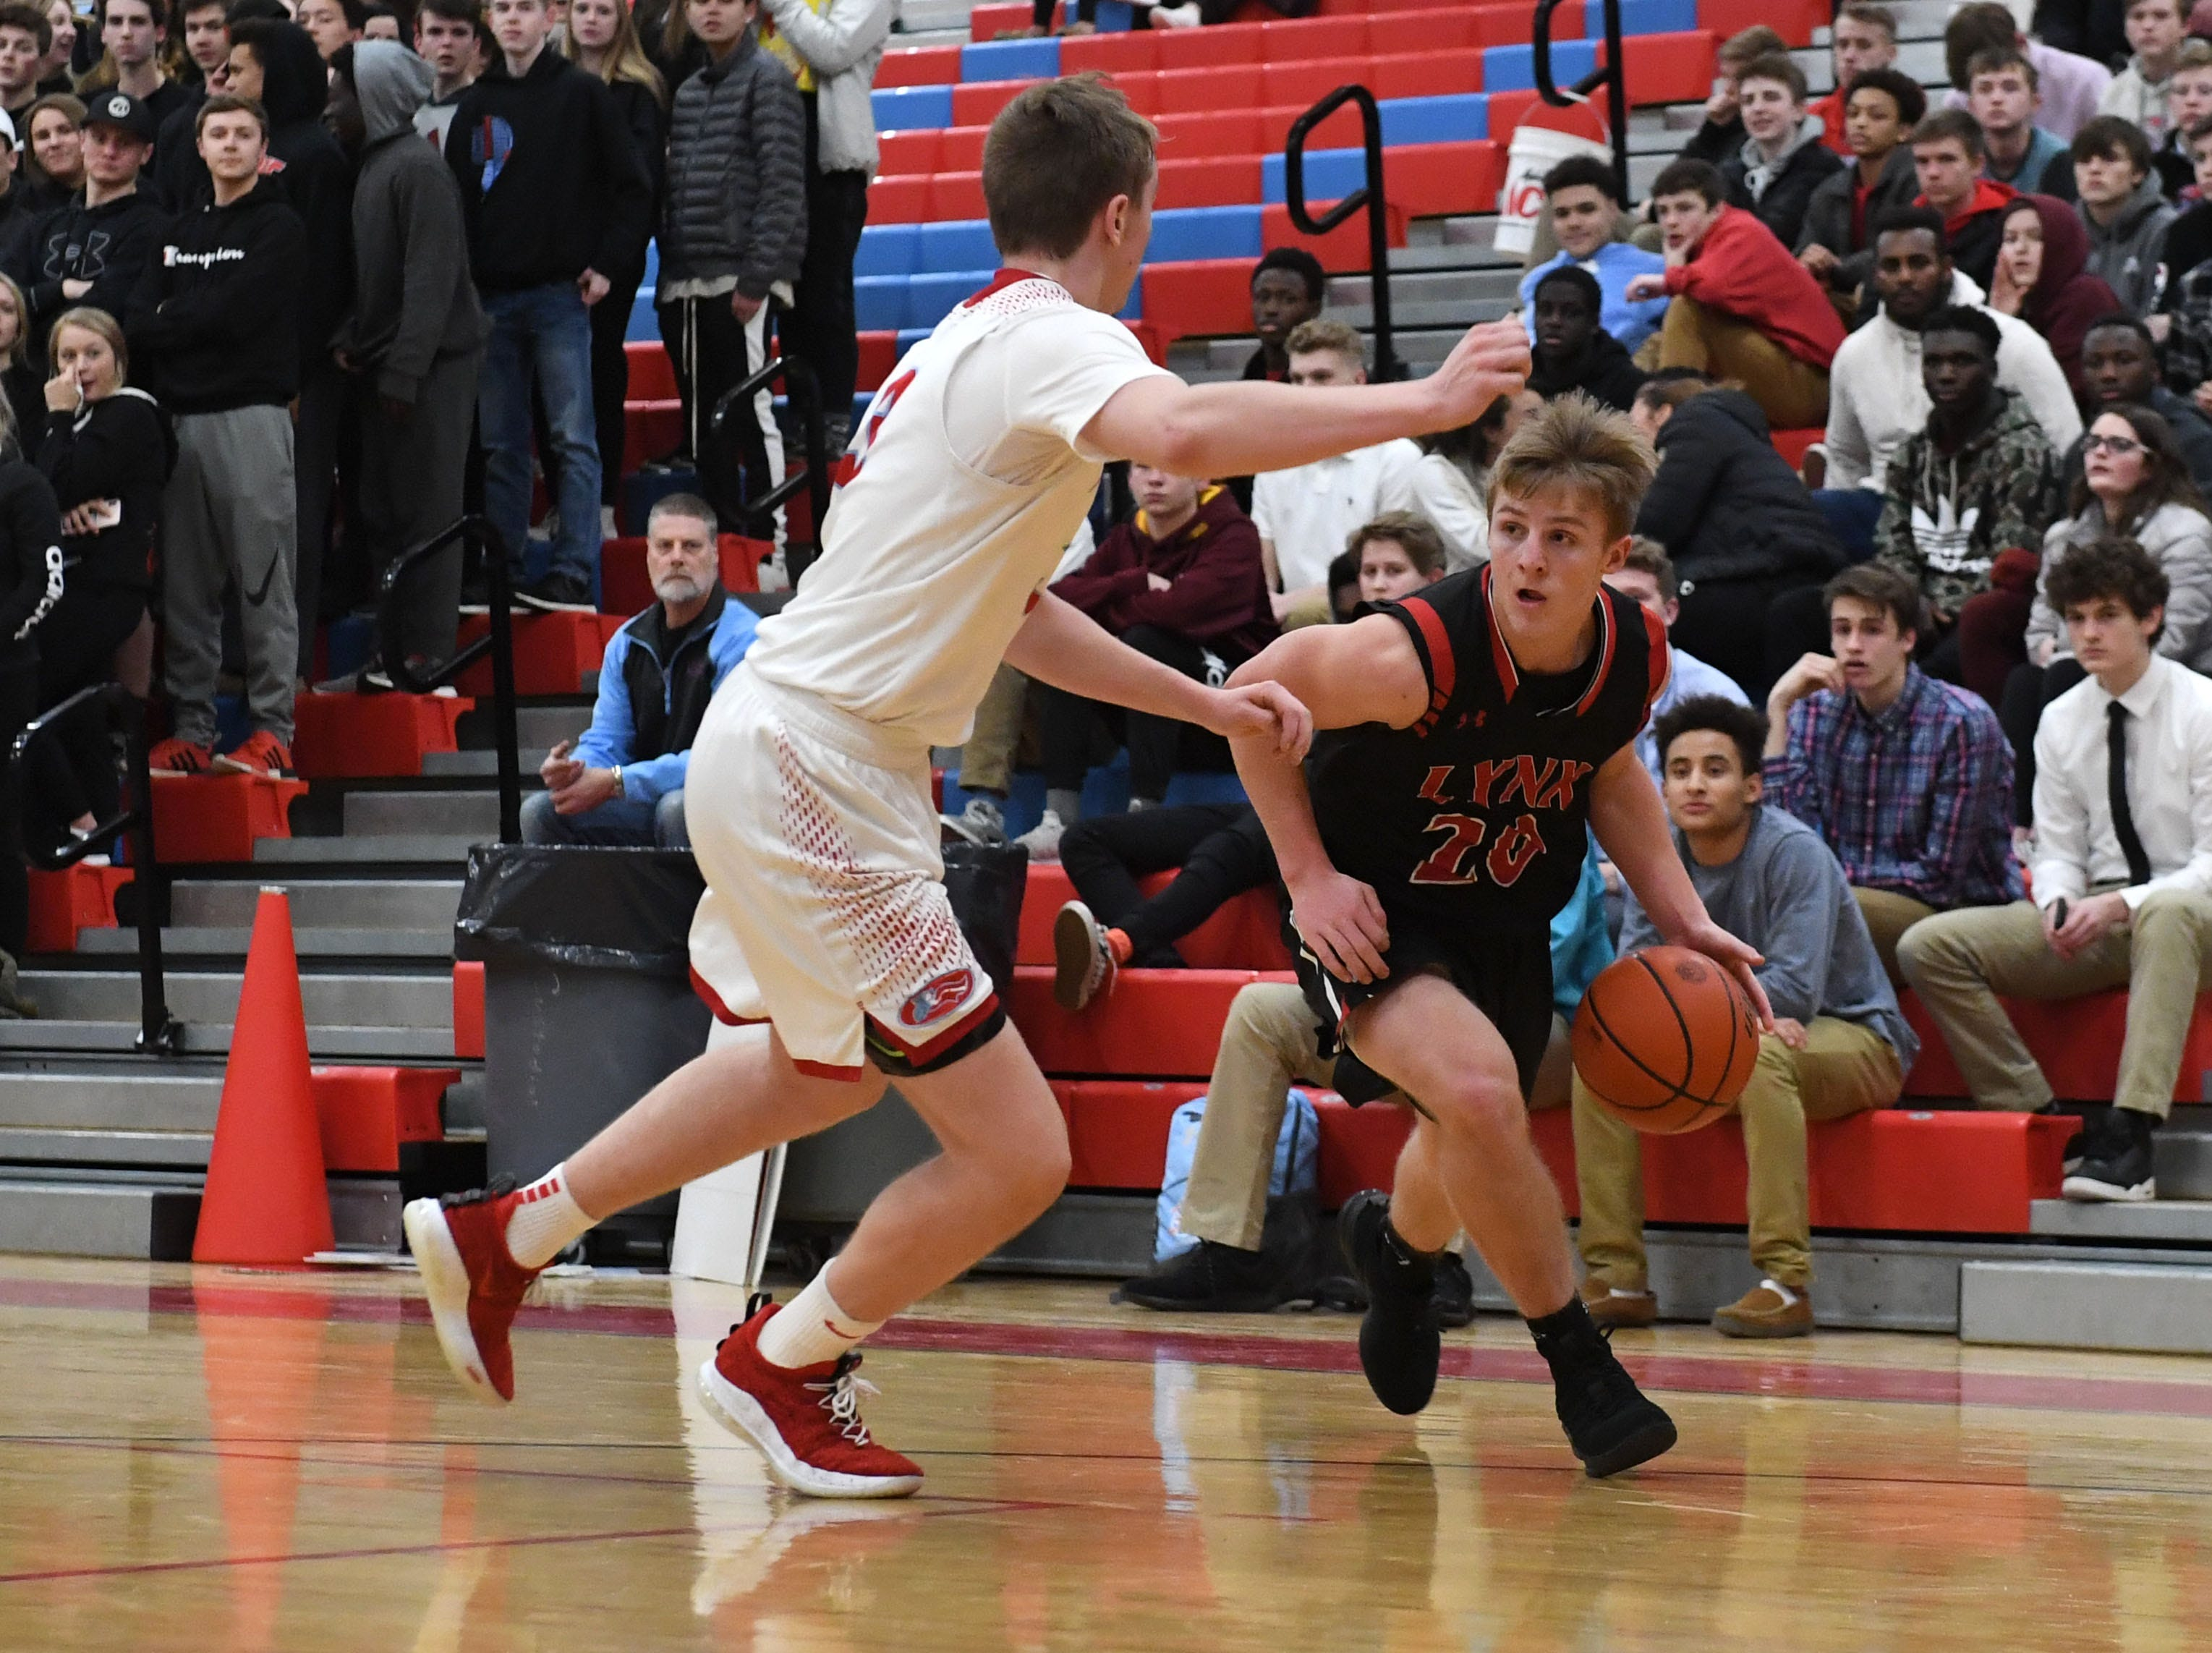 Brandon Valley's Joe Kolbeck (20) dribbles the ball past Lincoln player during a game in Sioux Falls, S.D., Tuesday, Feb. 5, 2019.